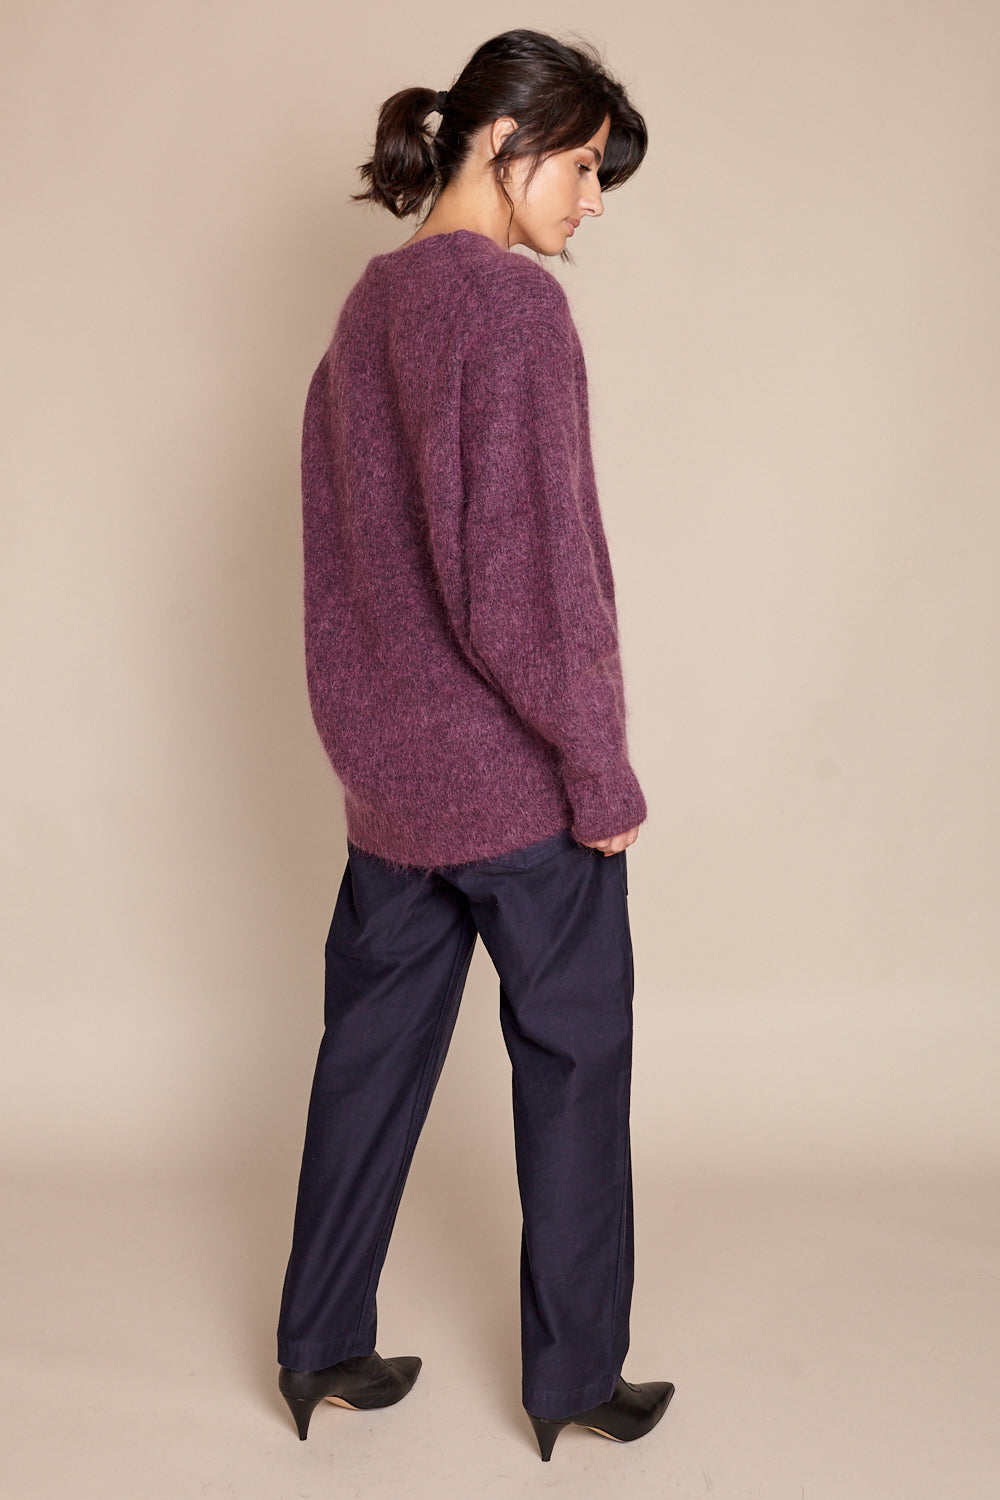 Sayaka Davis Cocoon Sweater in Amethyst - Vert & Vogue